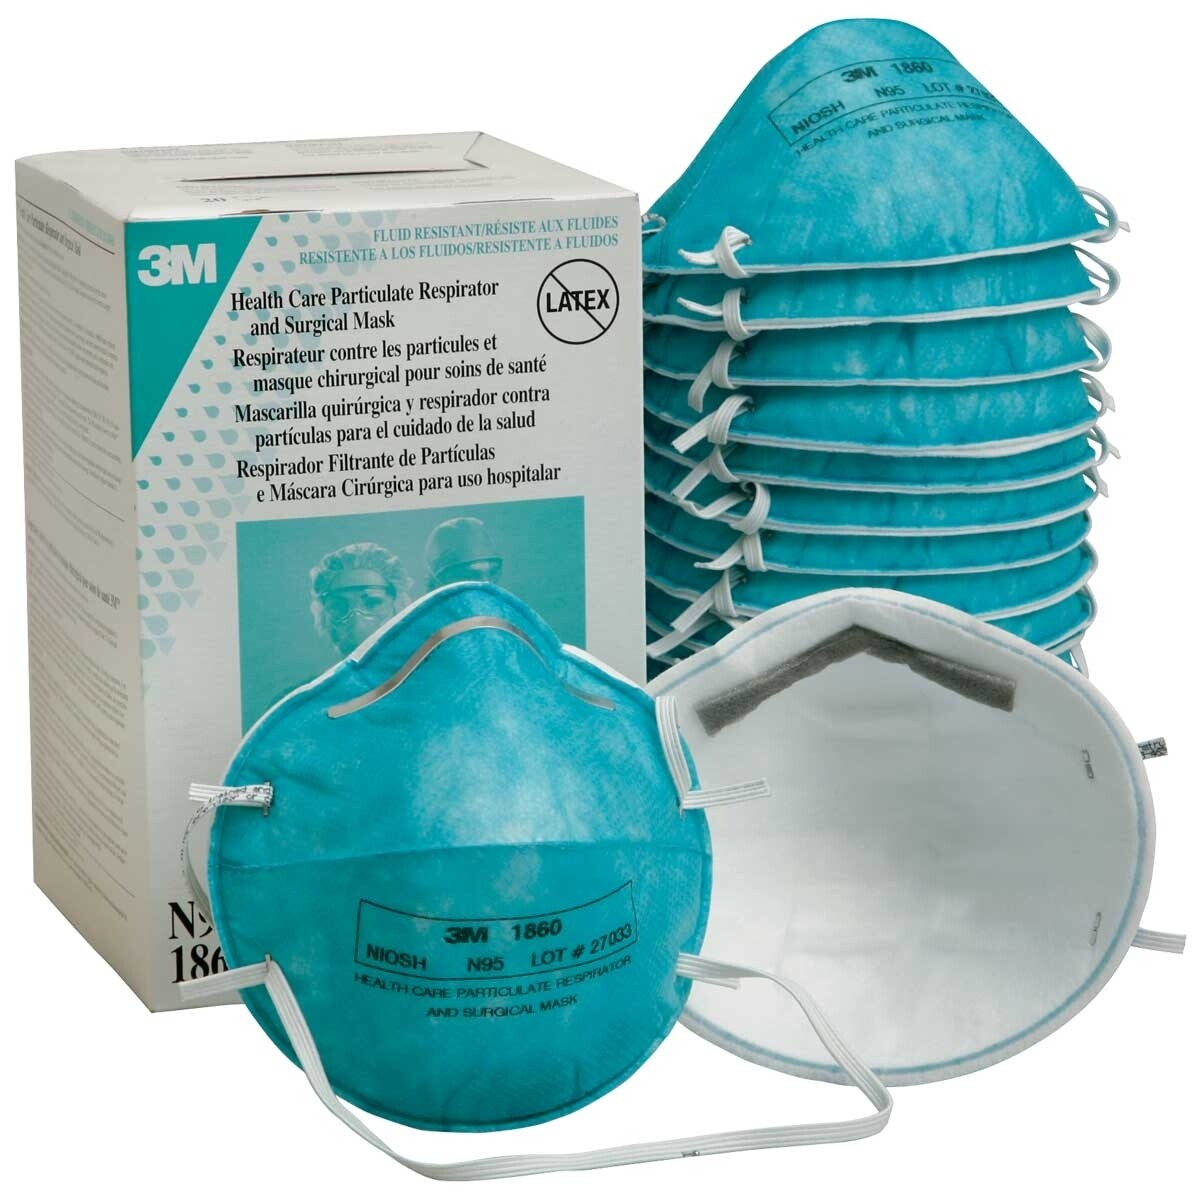 20/Box 3M 1860 N95 Particulate Respirator Face Mask